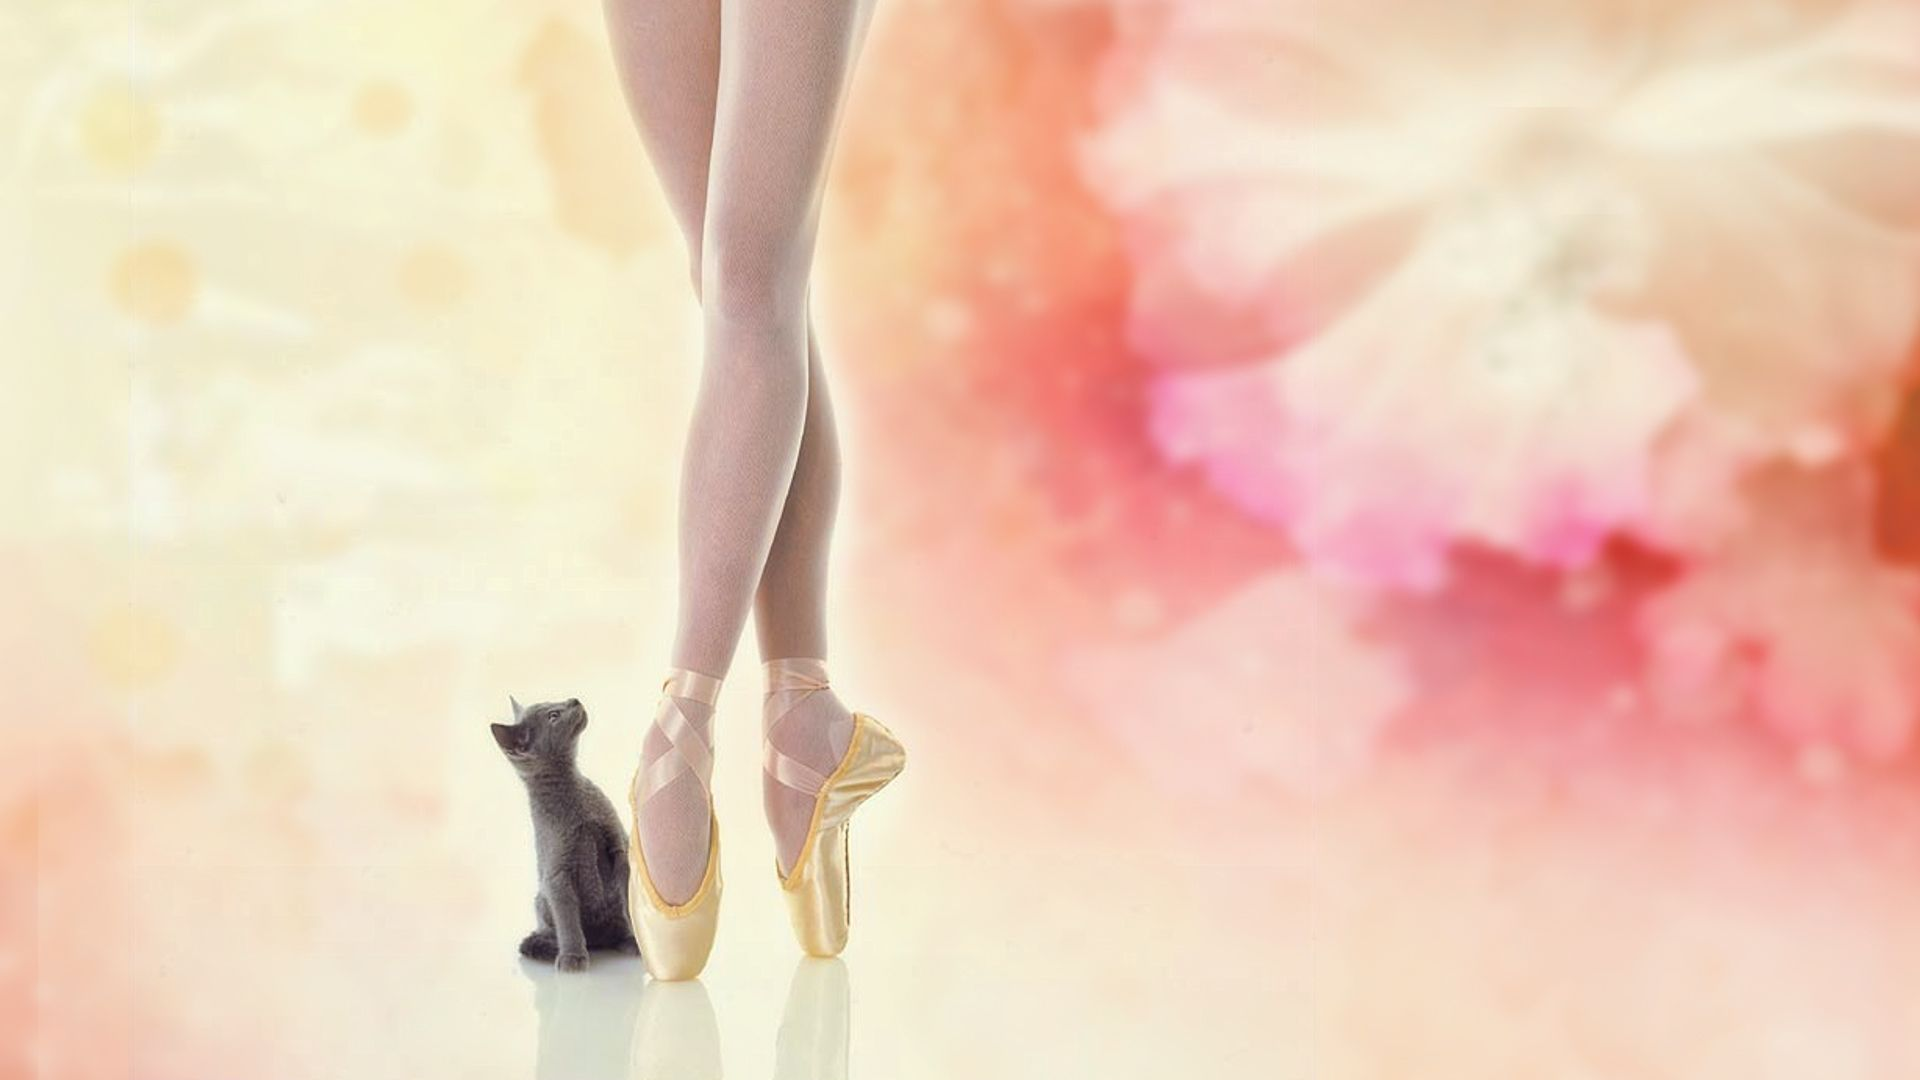 Download Wallpaper Artistic Ballerina With Tags Flower Beautiful Cat Linux Macos Macbook Pro Kitten Ballerina Chaton